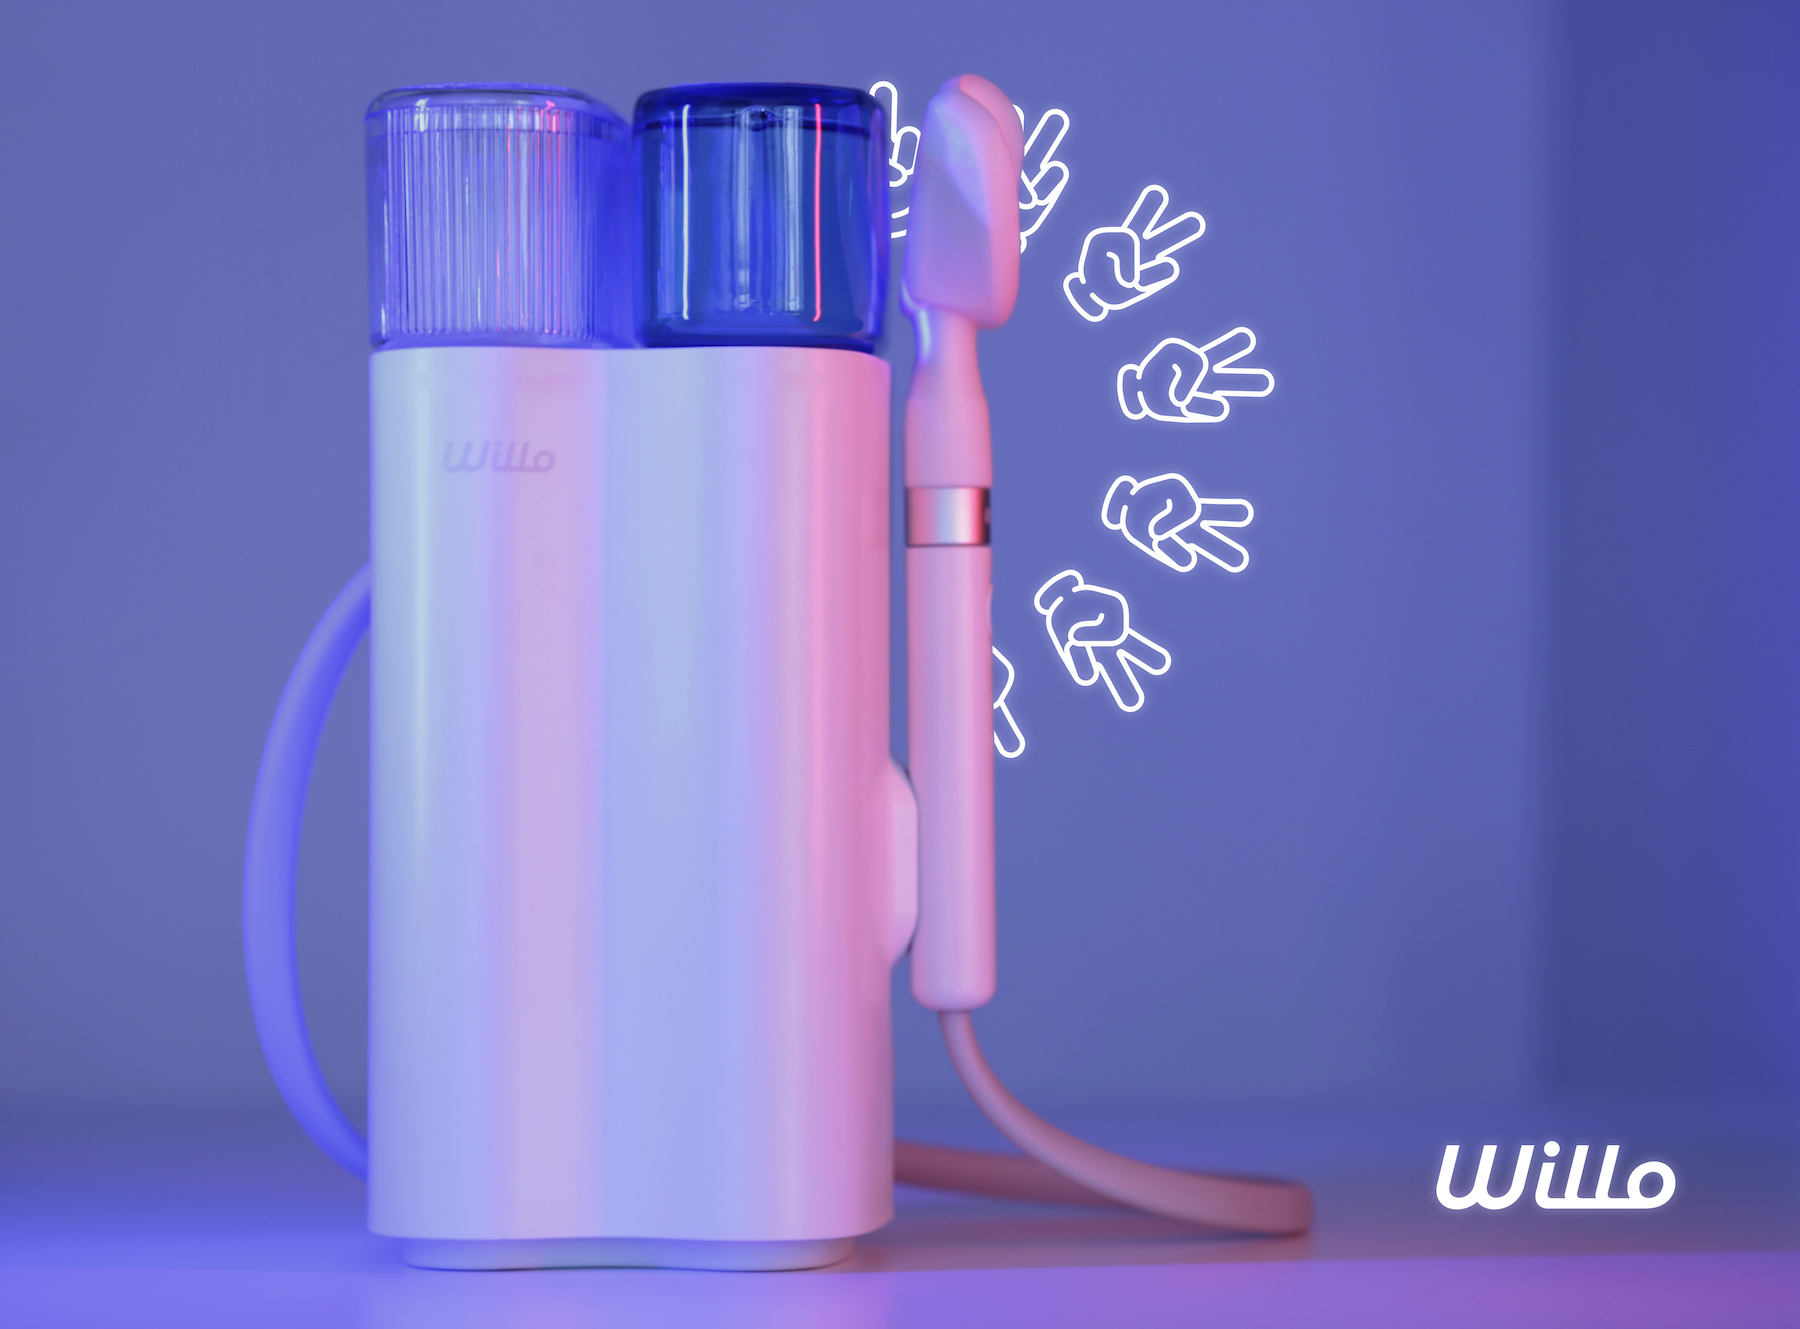 Willo launches its tooth-brushing robot for kids